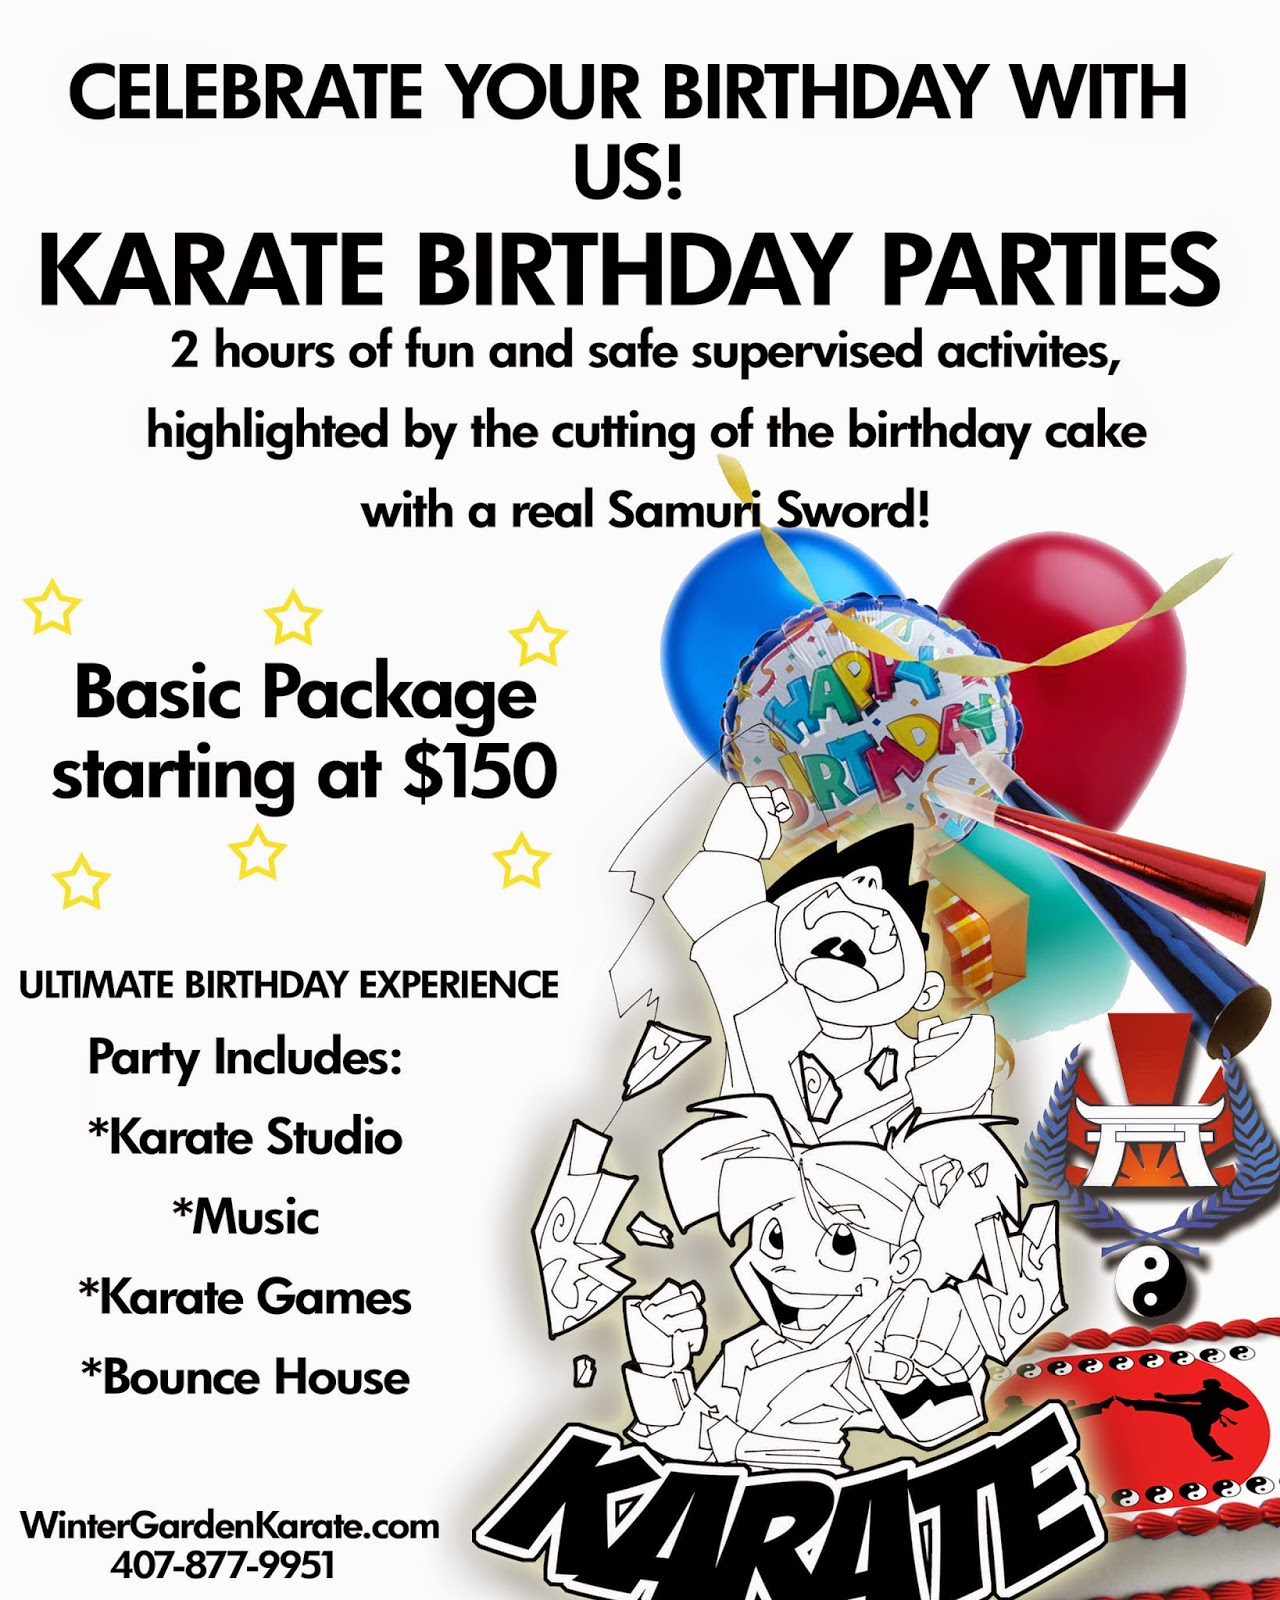 winter garden karate karate birthday